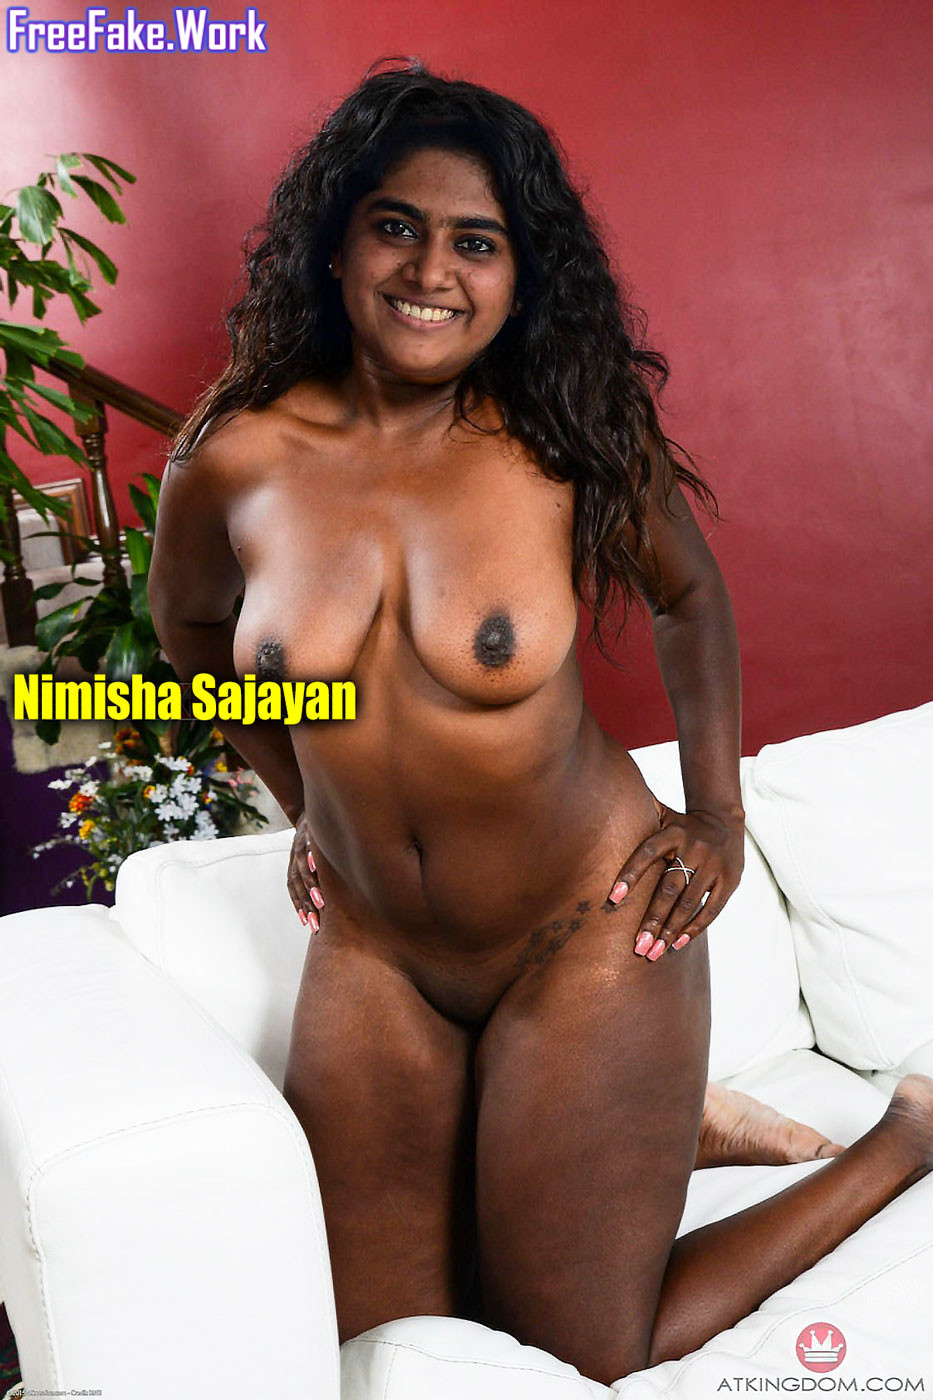 Nimisha-Sajayan-full-nude-black-body-without-dress.jpg